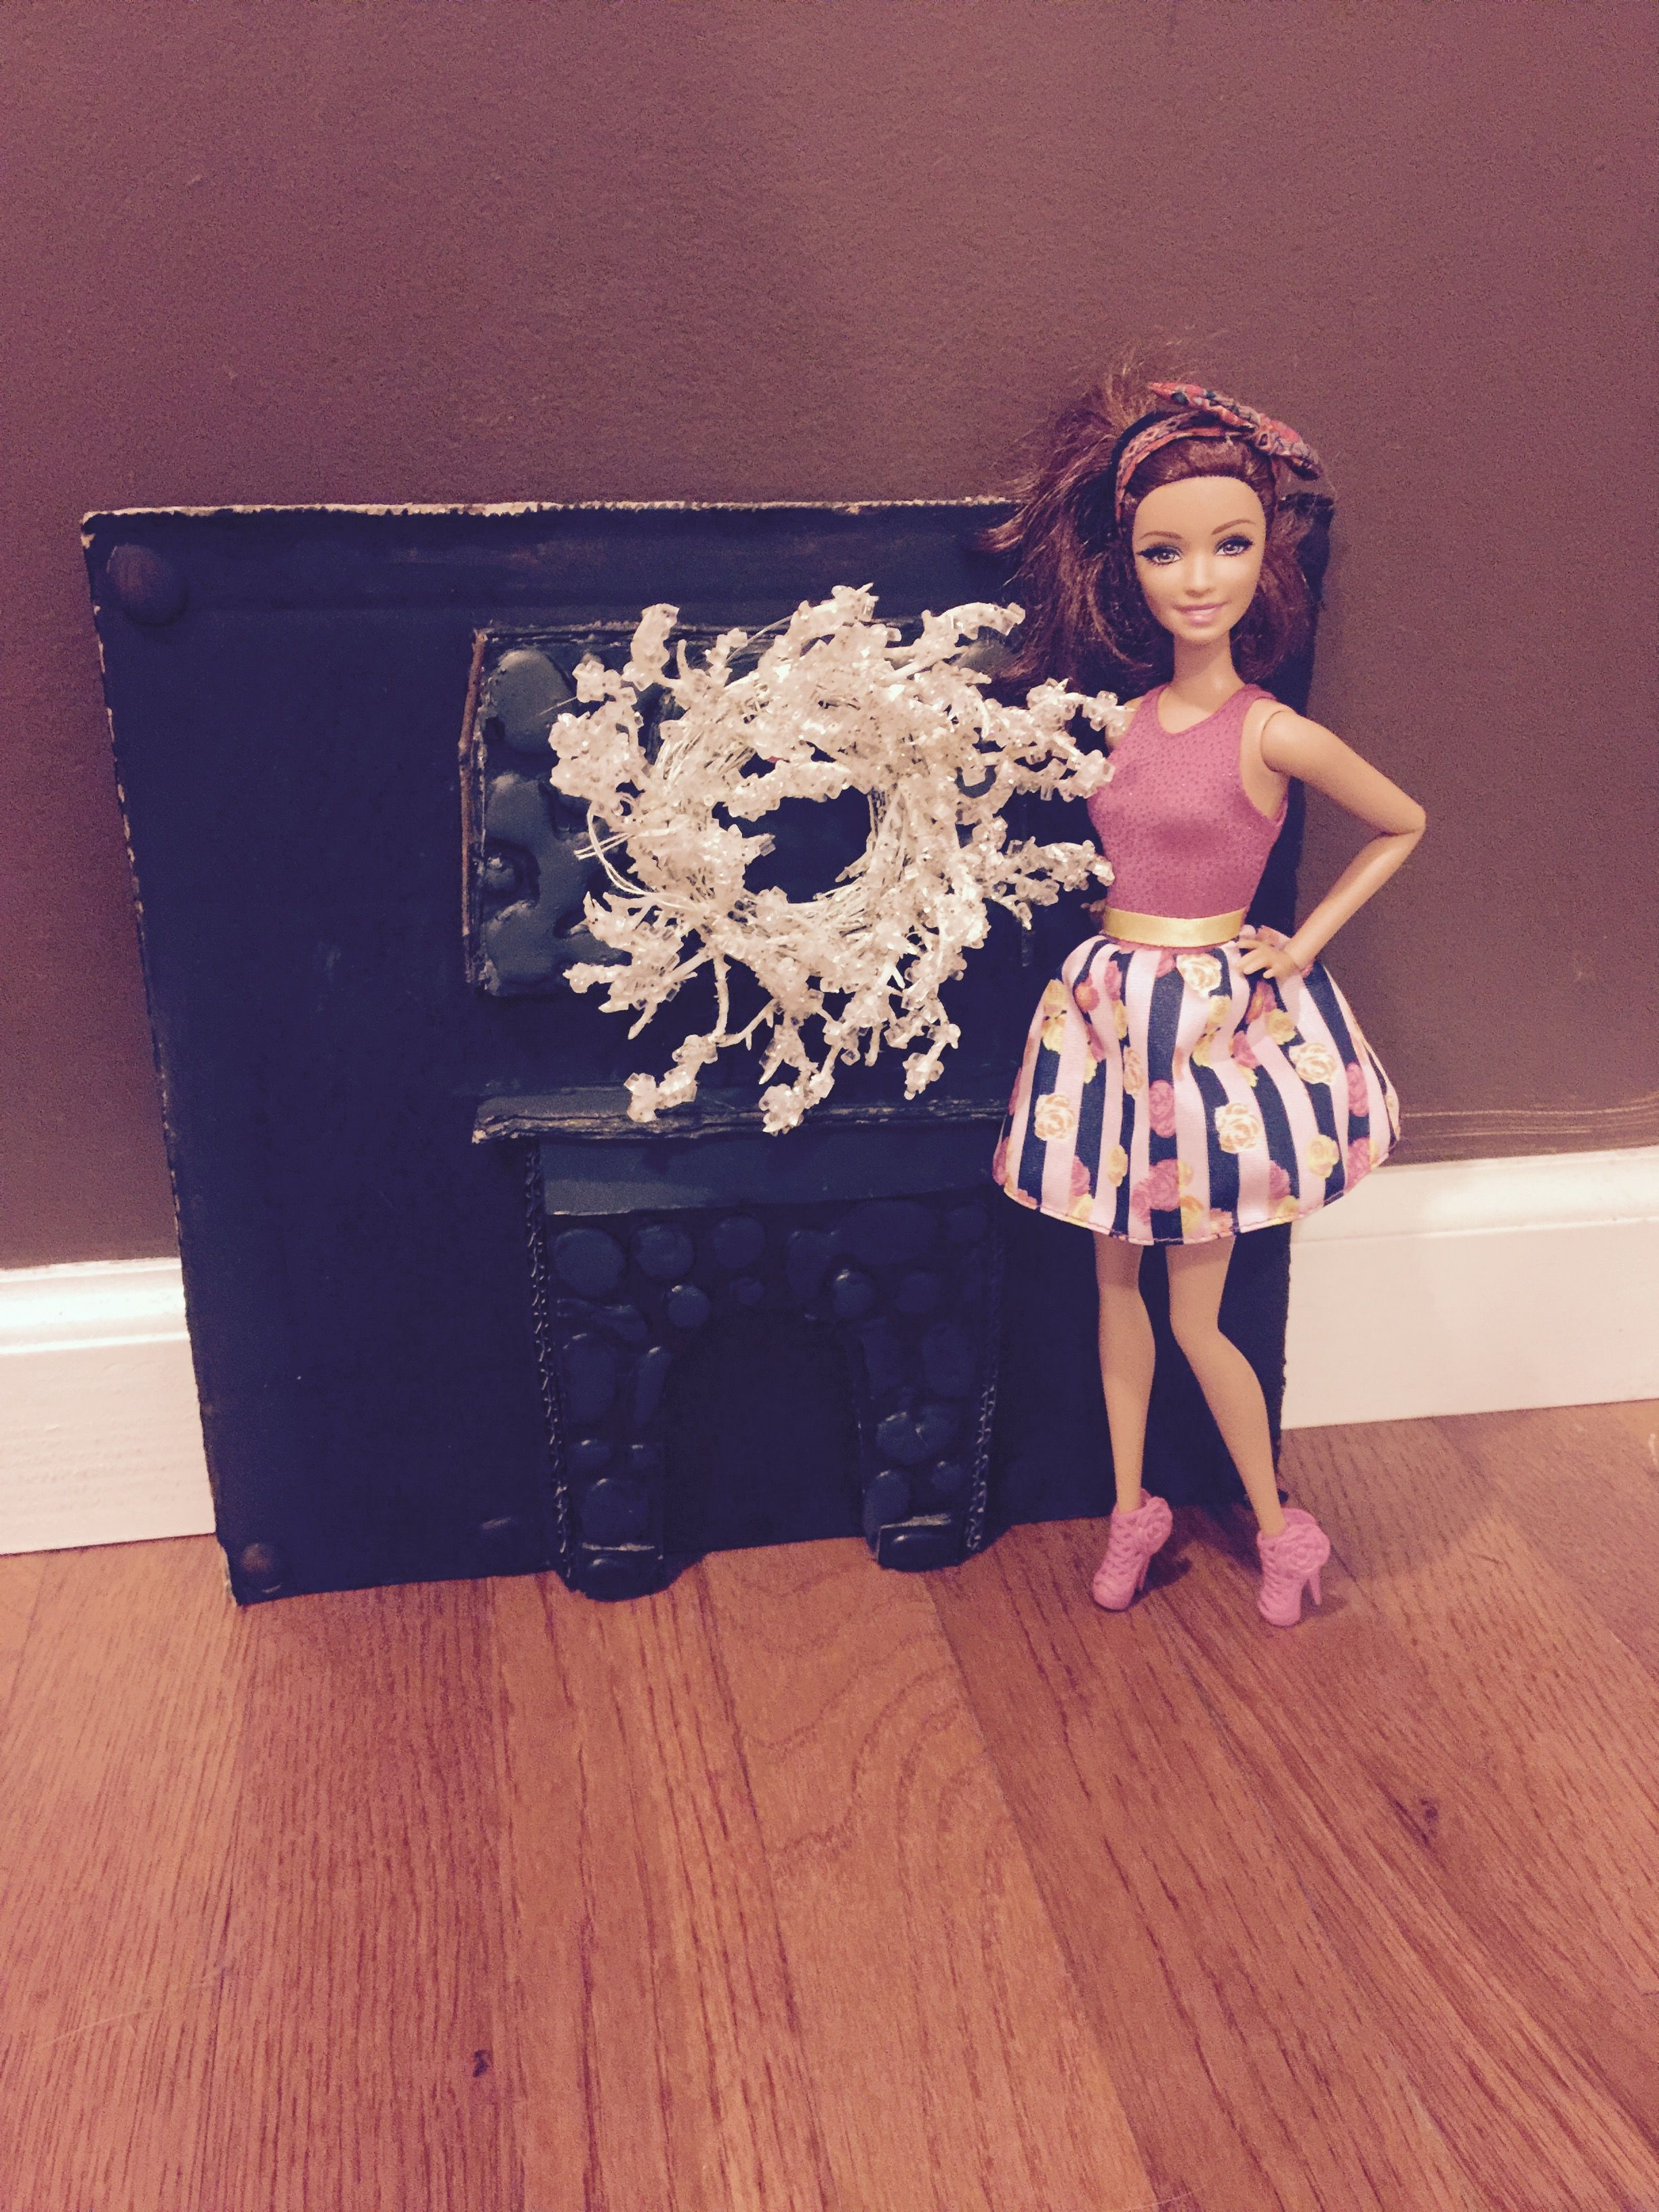 Barbie fireplace from cardboard, hot glue and paint